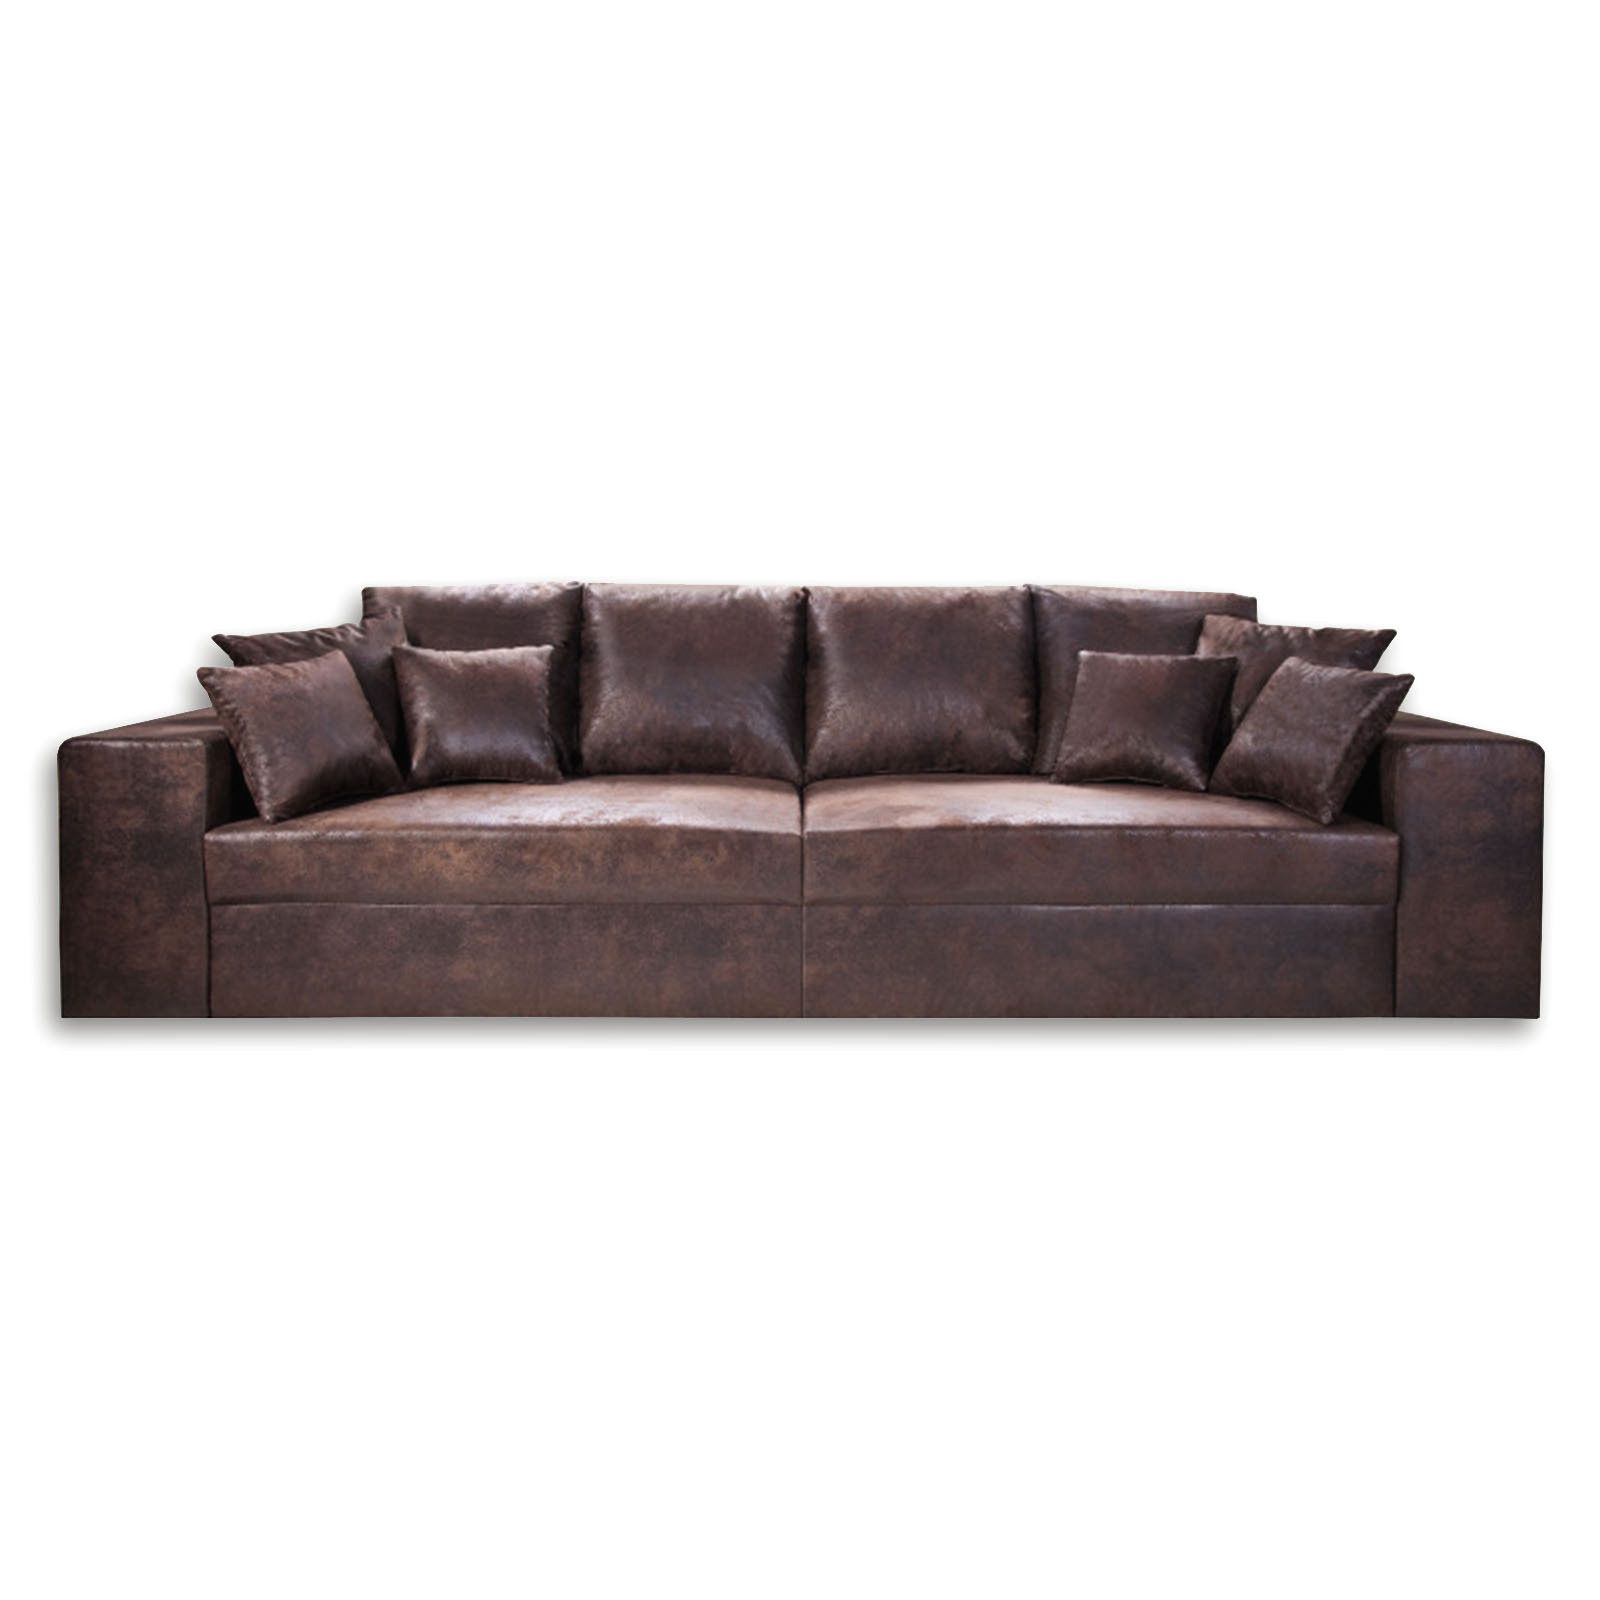 Teuer Sofa Xxl Lutz Couch Modern Couch Sofas